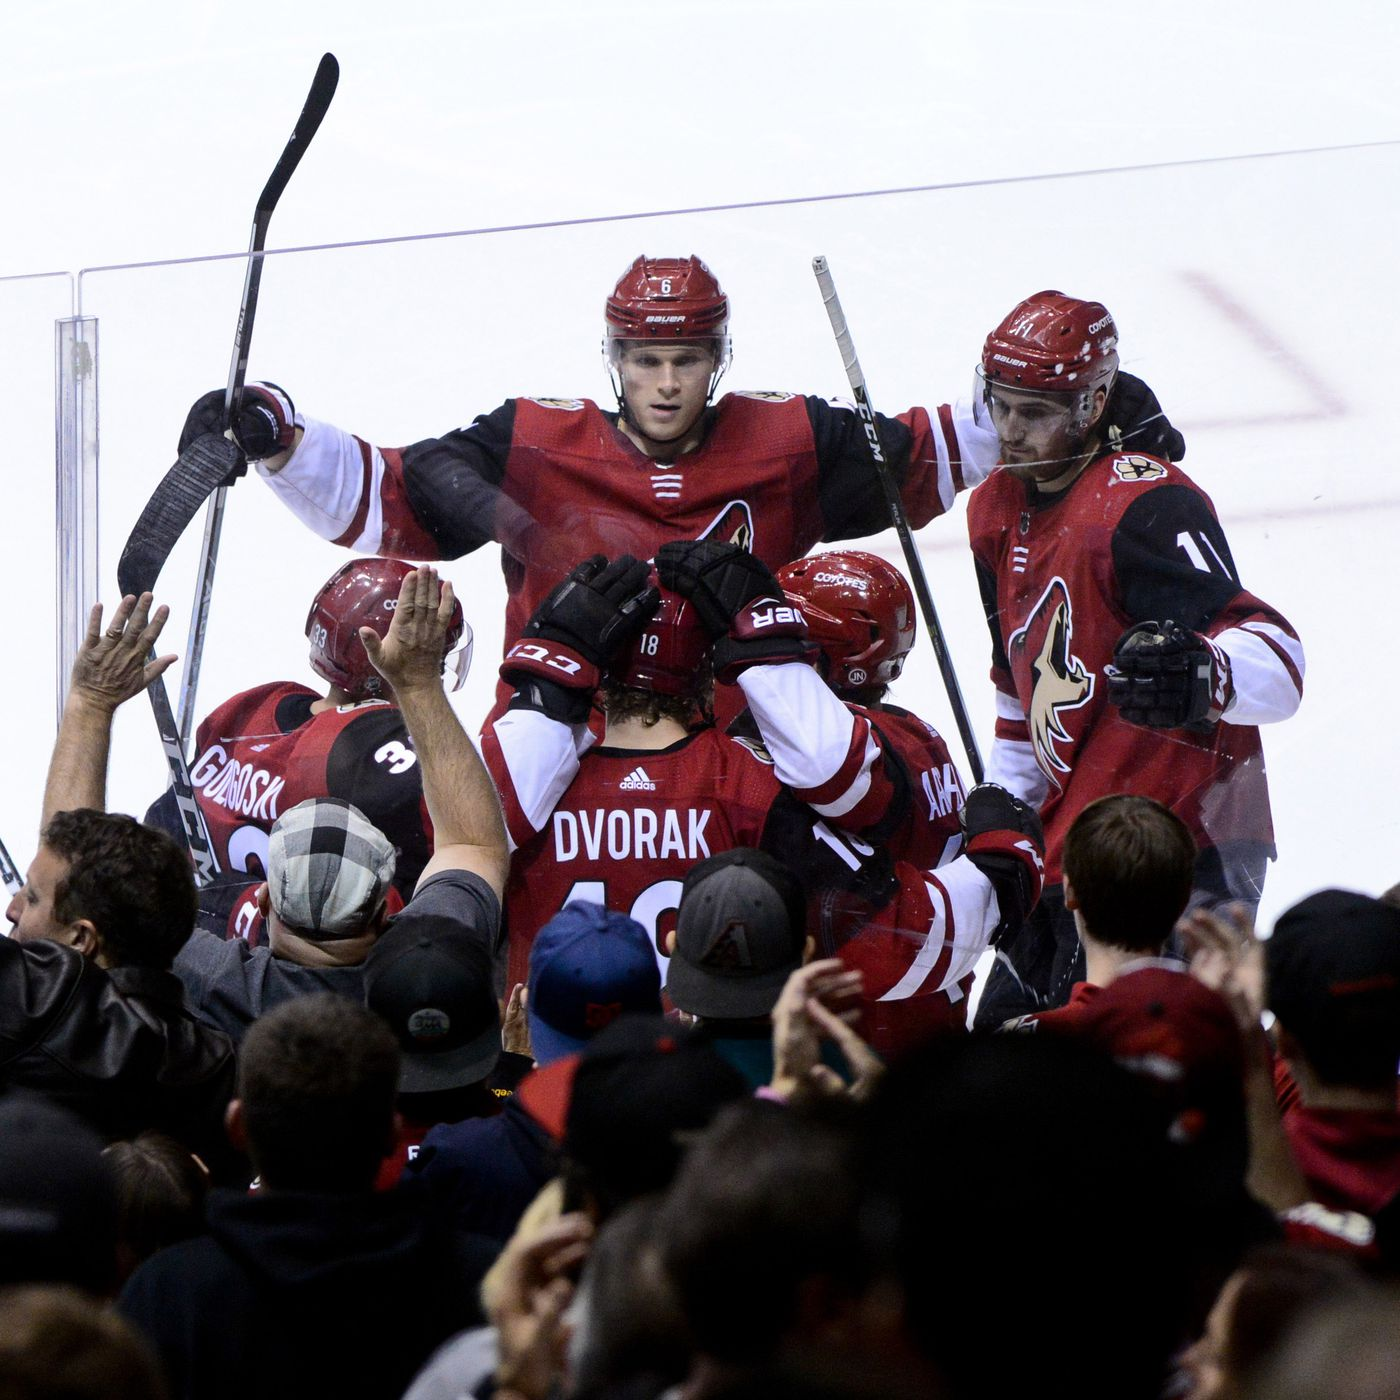 promo code c207c 7e455 Coyotes lower the Capitals, gift fans with a win - Five For ...